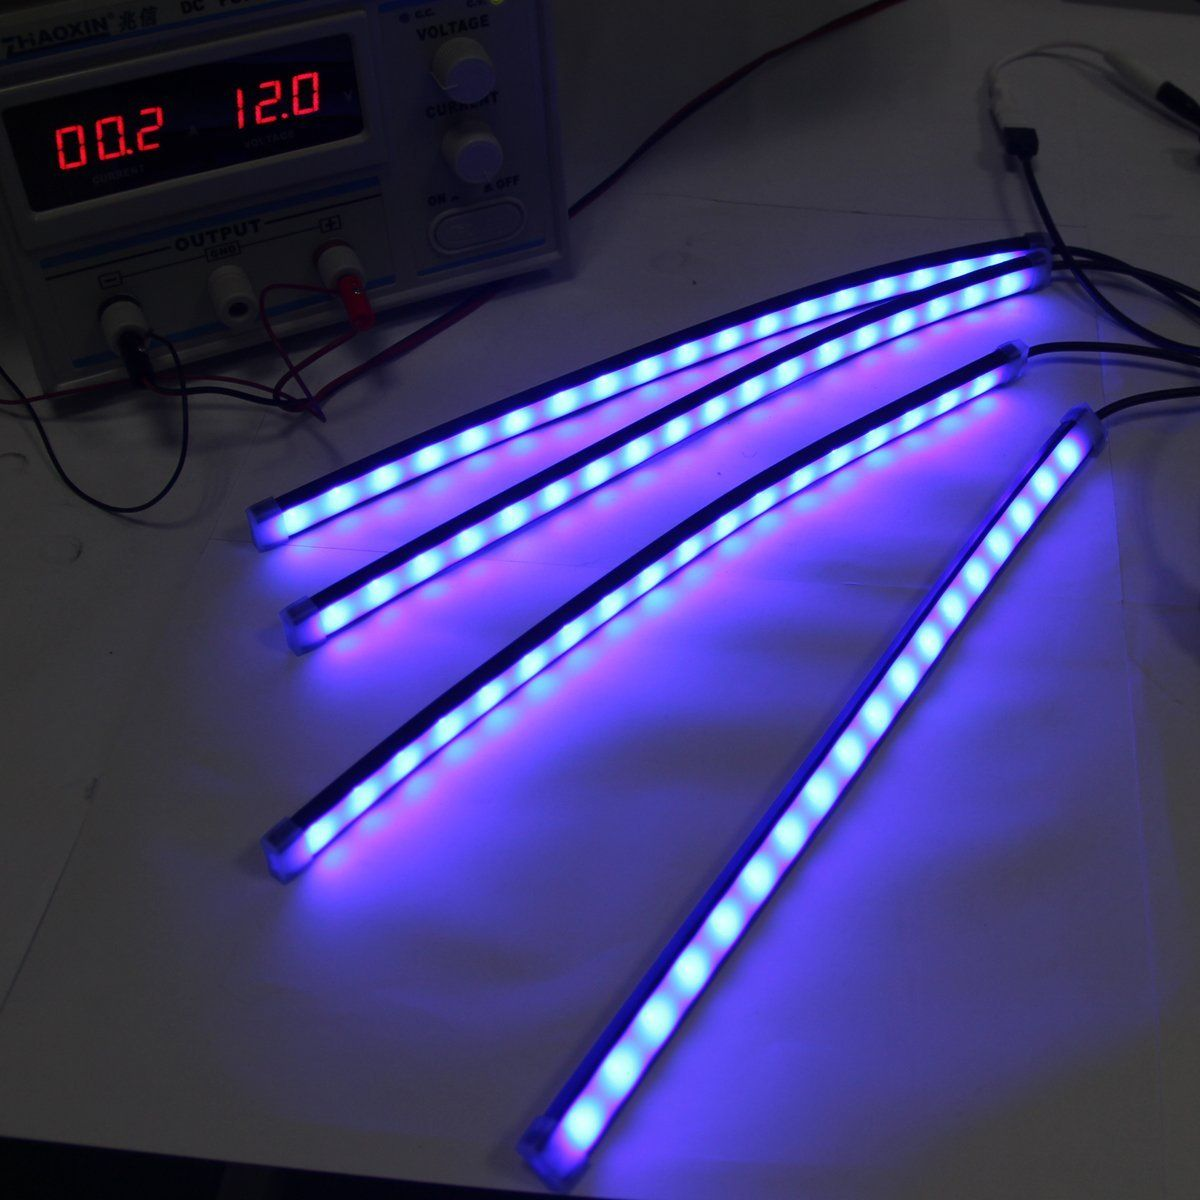 Automotive Led Light Strips Entrancing Image Result For Interior Led Light Strips For Cars  Car Design Inspiration